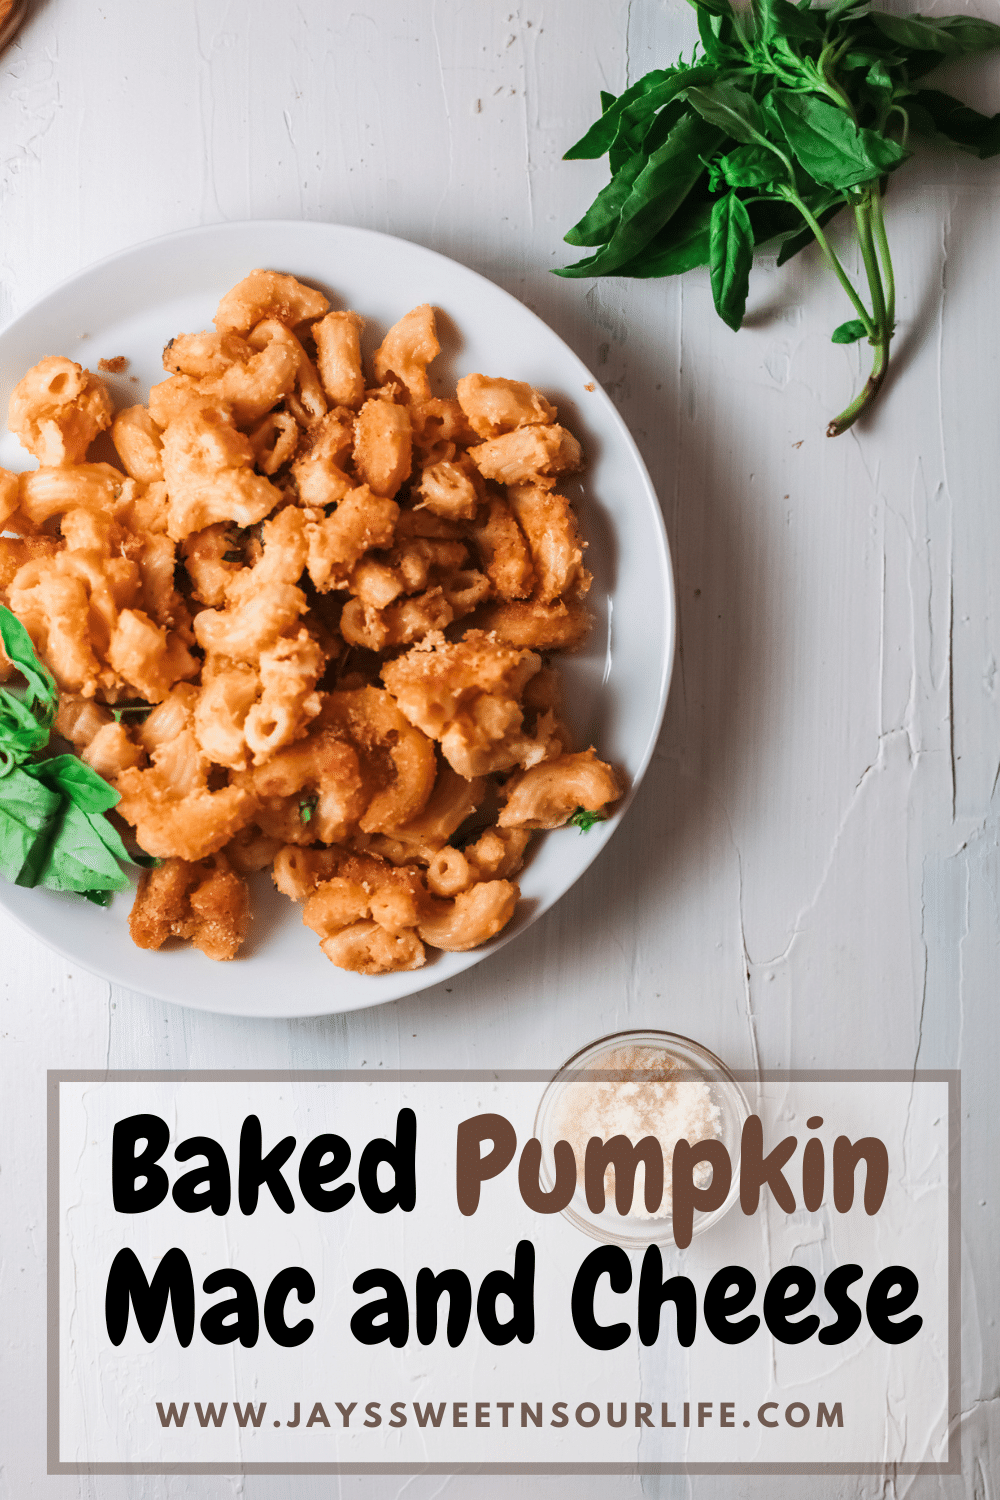 Baked Pumpkin Mac and Cheese. This Easy Baked Pumpkin Mac and Cheese is ultra-creamy, perfectly cheesy, and gooey. Topped with a crispy parmesan breadcrumb crust it's the perfect fall dish for the whole family.